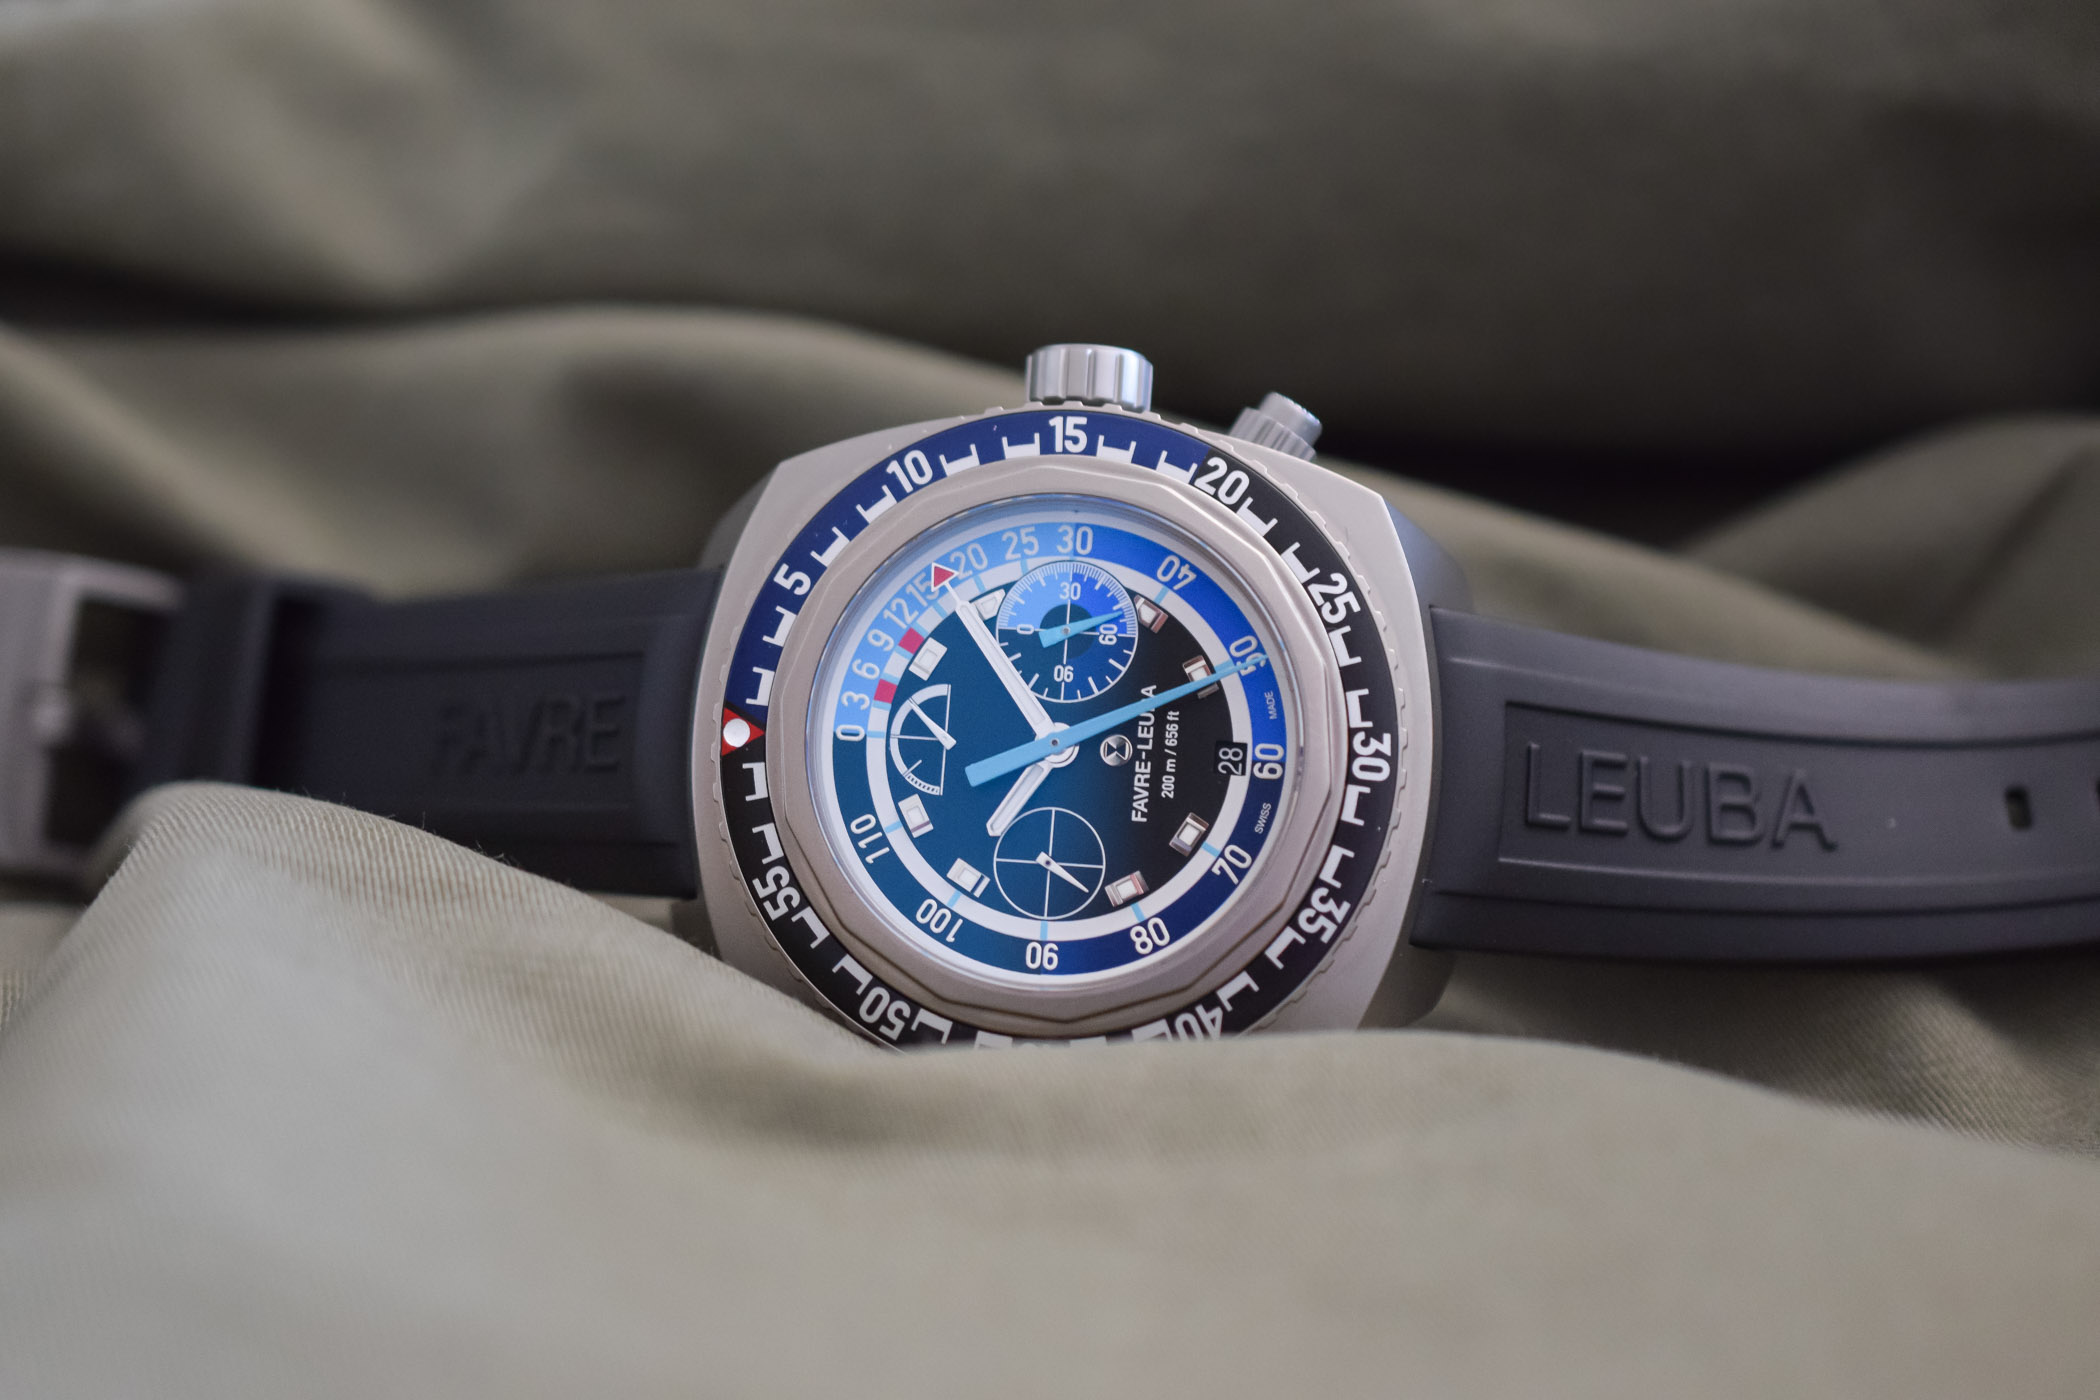 Best Dive Watches Baselworld 2018 - FAVRE-LEUBA RAIDER BATHY 120 MEMODEPTH